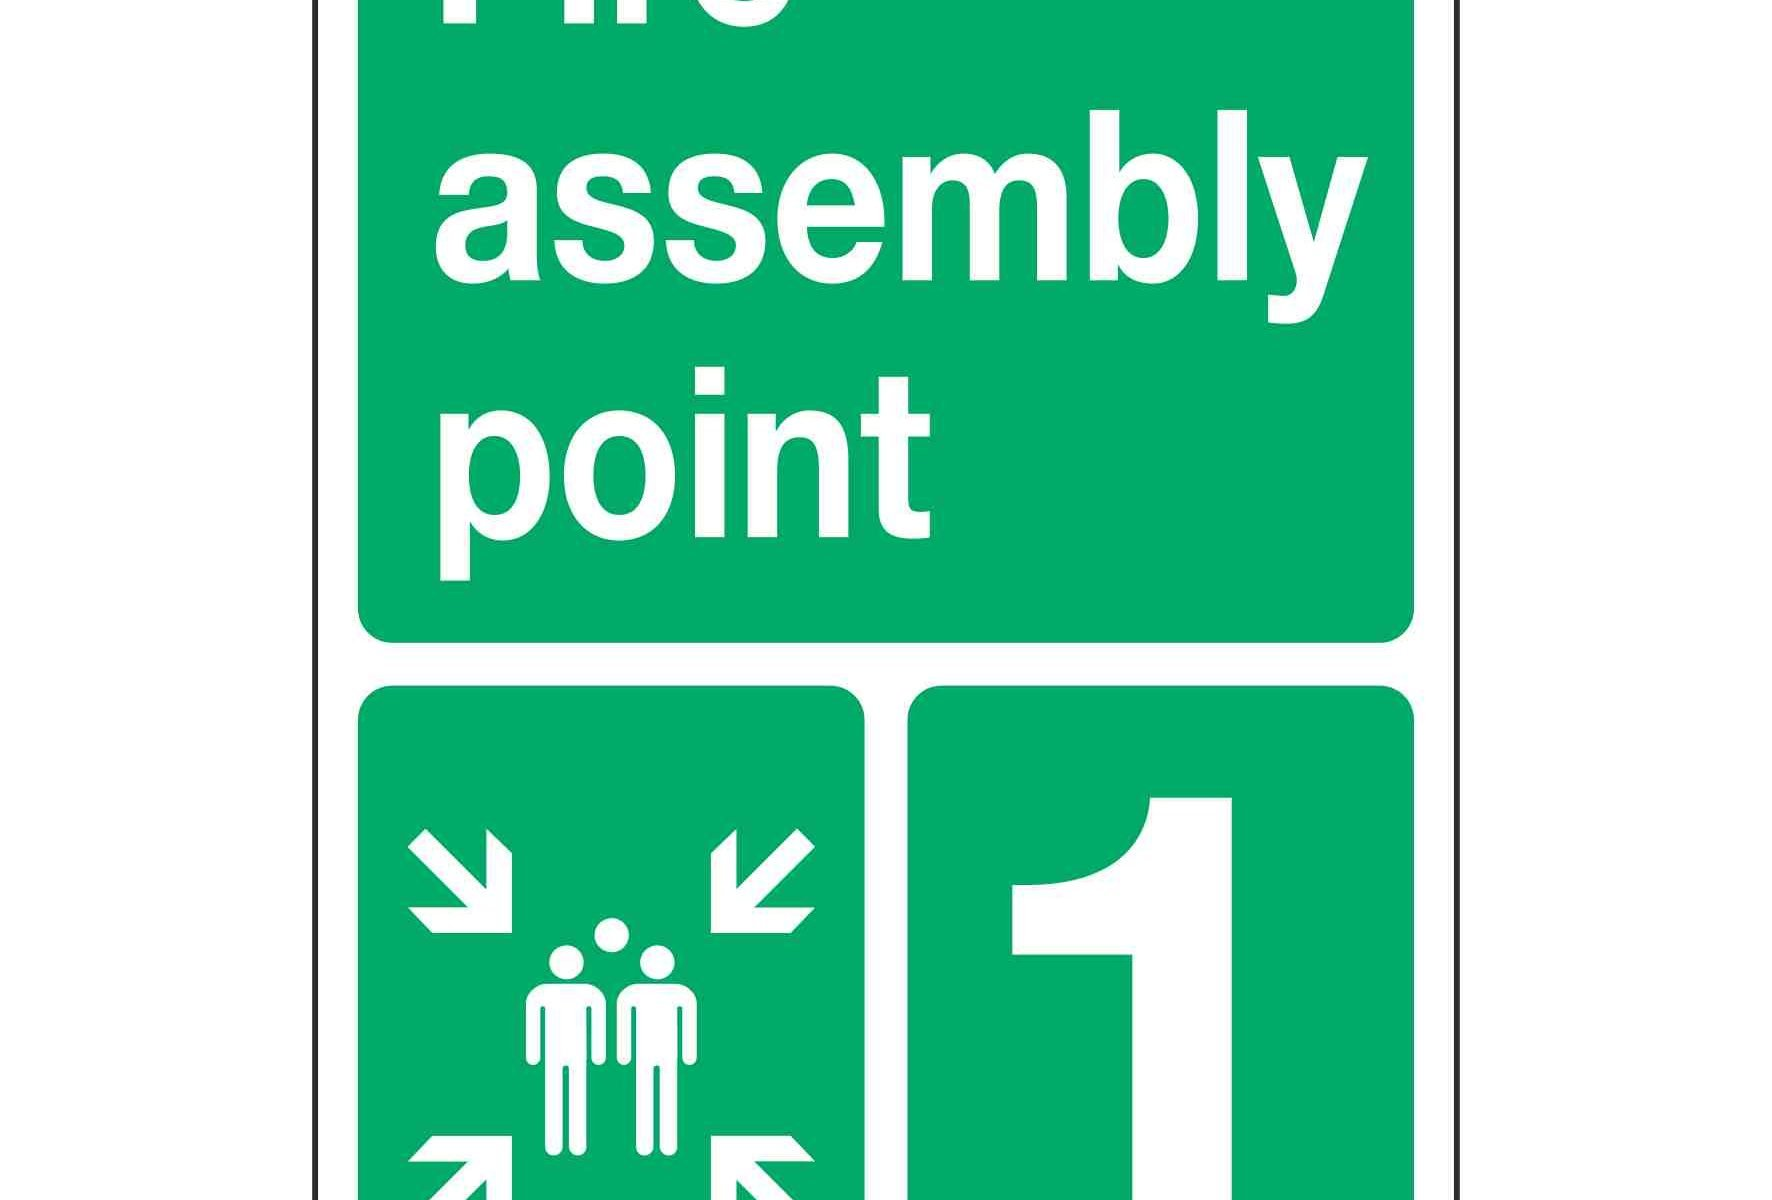 Fire assembly point (Metal + Optional number or letter)